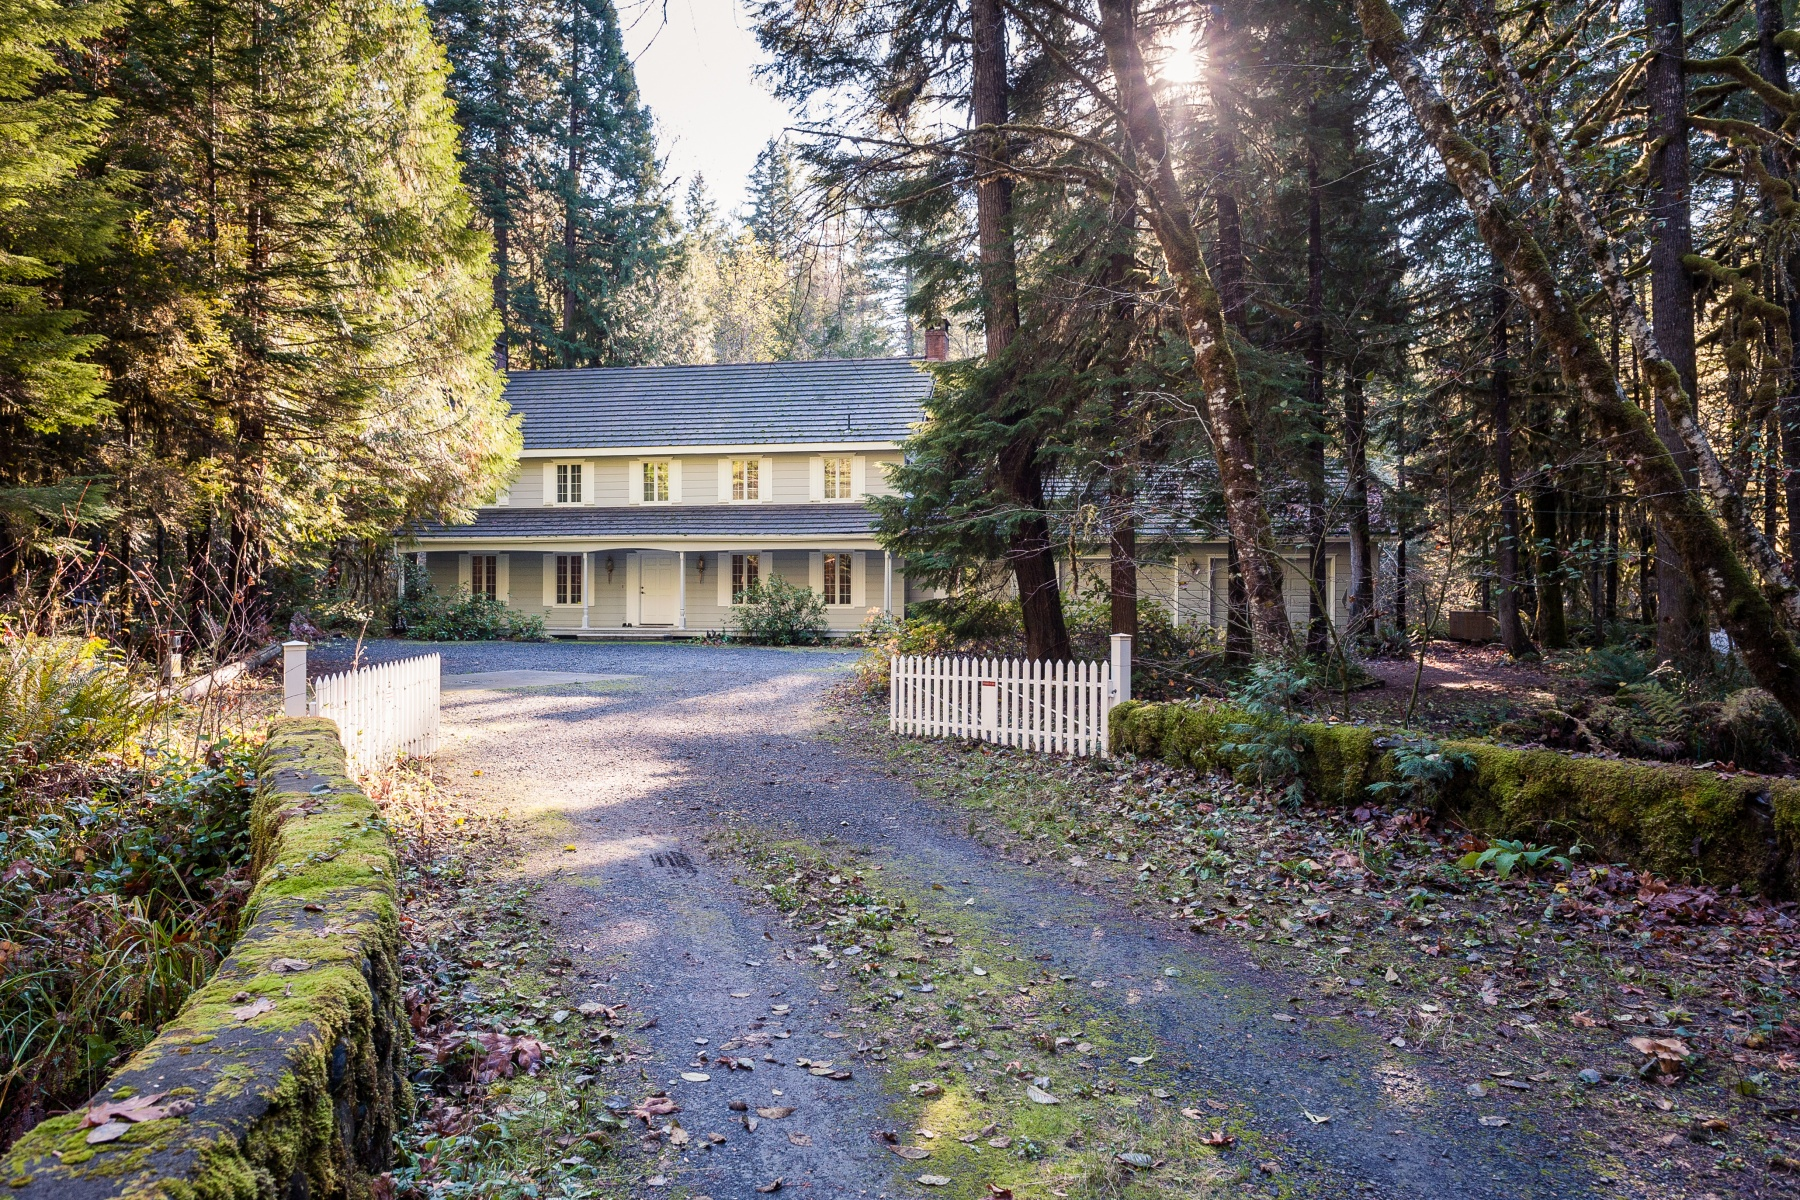 Single Family Home for Sale at 56948 North Bank Road, MCKENZIE BRIDGE 56948 North Bank Rd McKenzie Bridge, Oregon, 97413 United States